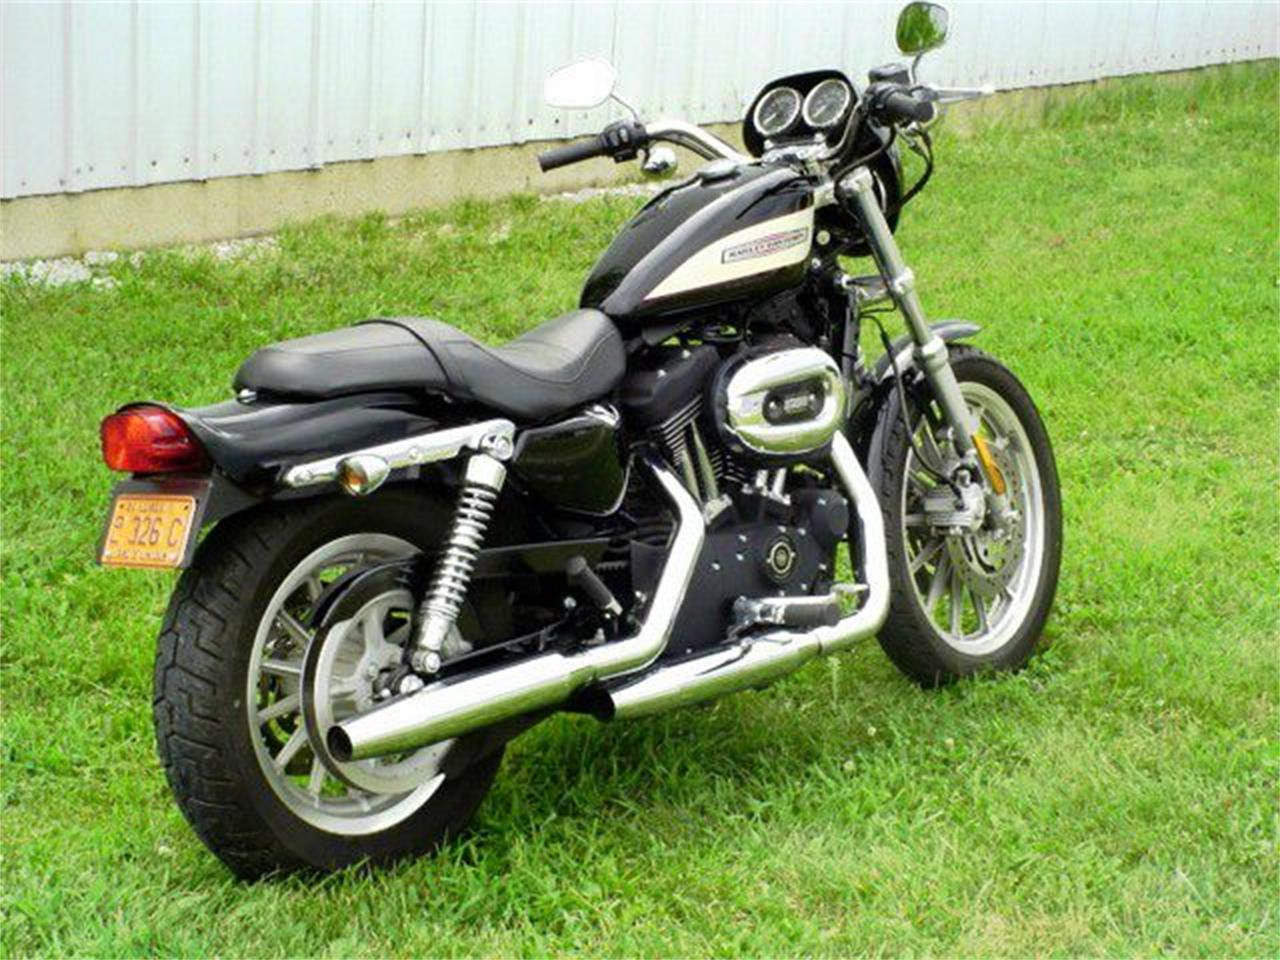 Large Picture of '07 Harley-Davidson Sportster located in Illinois Offered by Heartland Classics - Q5AM